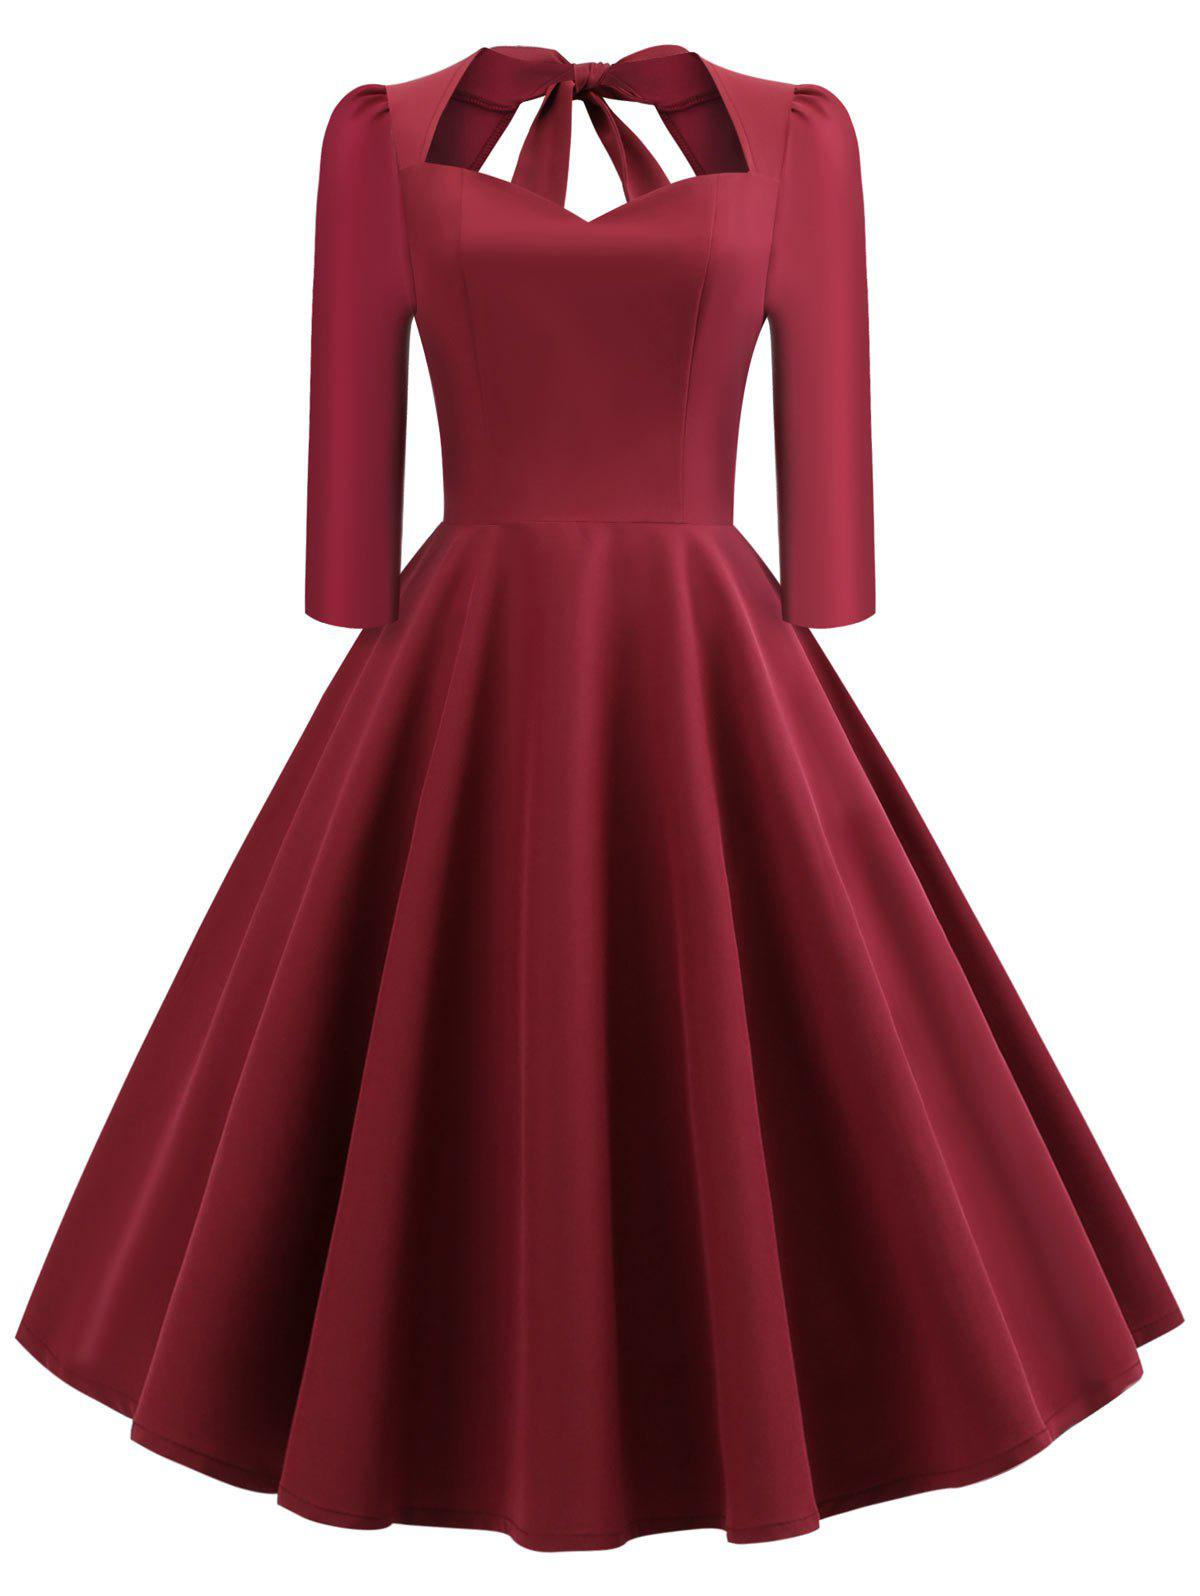 Shop Vintage Bow Tie Swing Dress